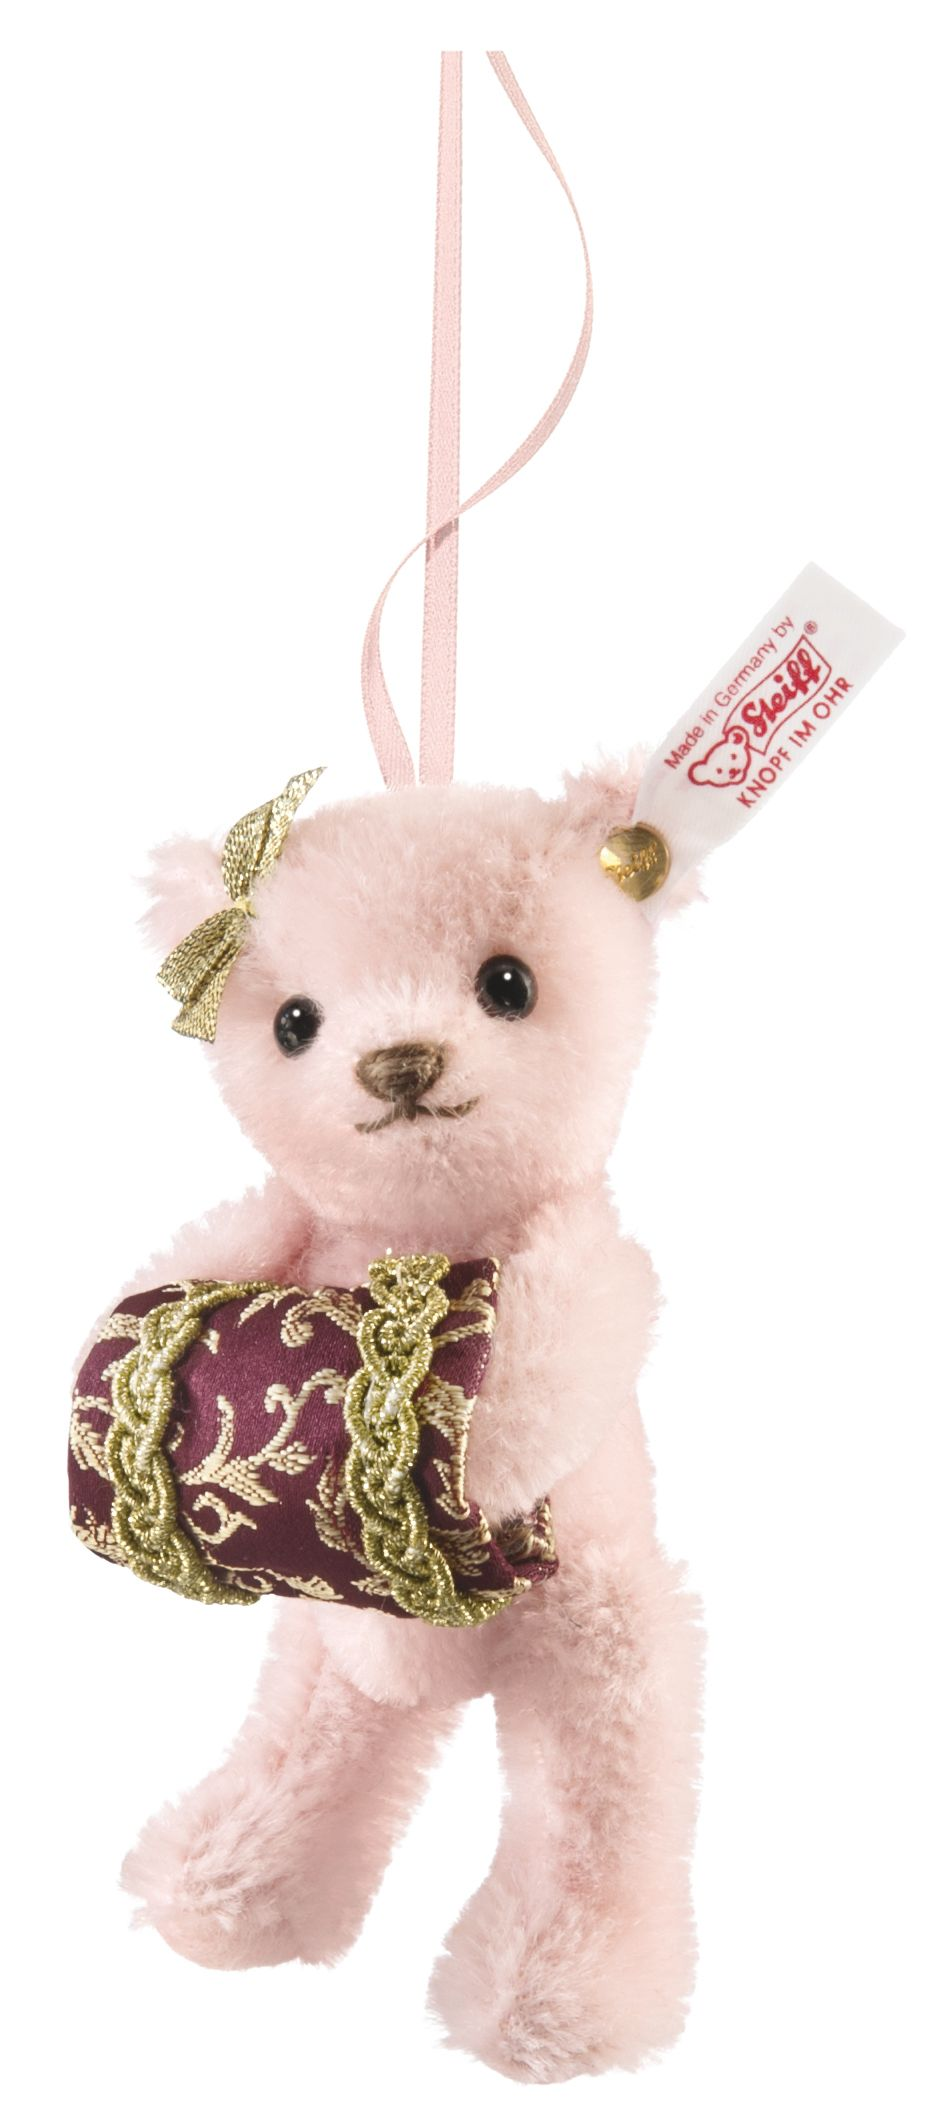 Steiff Teddy bear Emma ornament, pale pink (03483